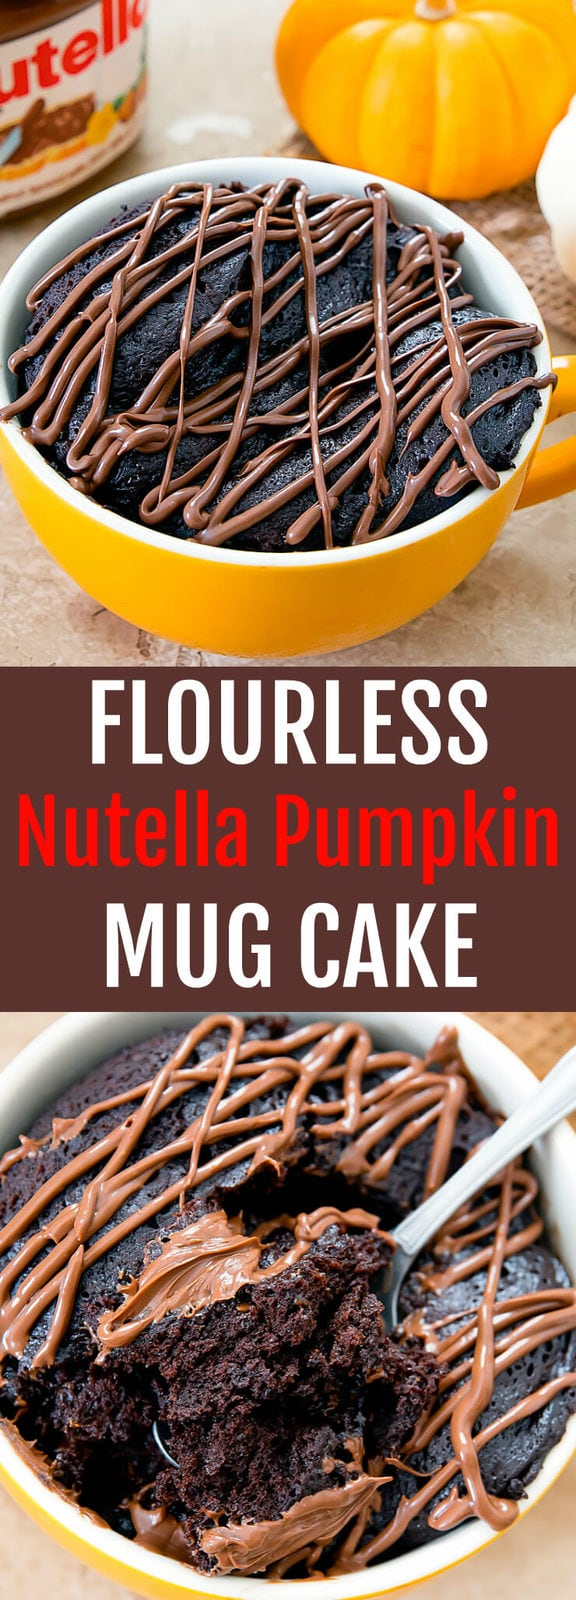 Flourless Nutella Pumpkin Mug Cake. This super moist chocolate gluten free cake cooks in the microwave in 2 minutes!